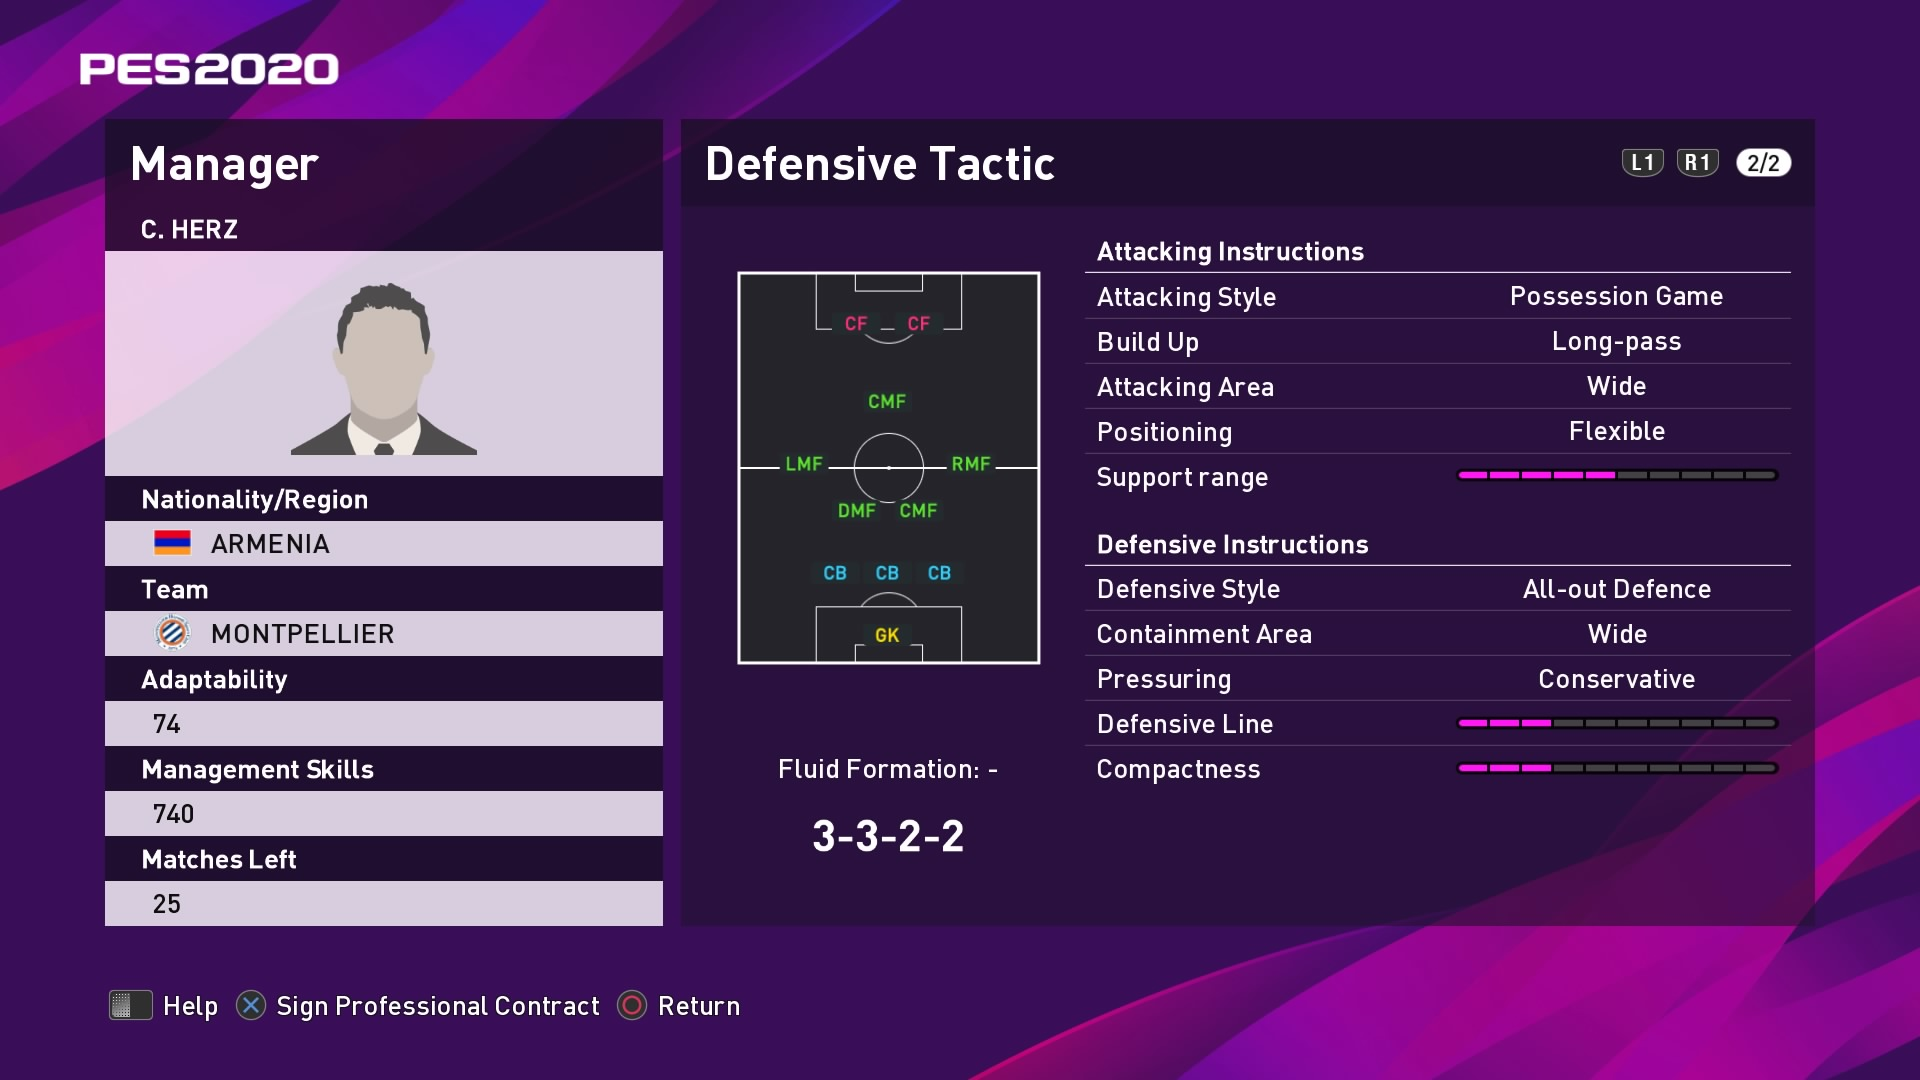 C. Herz (Michel Der Zakarian) Defensive Tactic in PES 2020 myClub